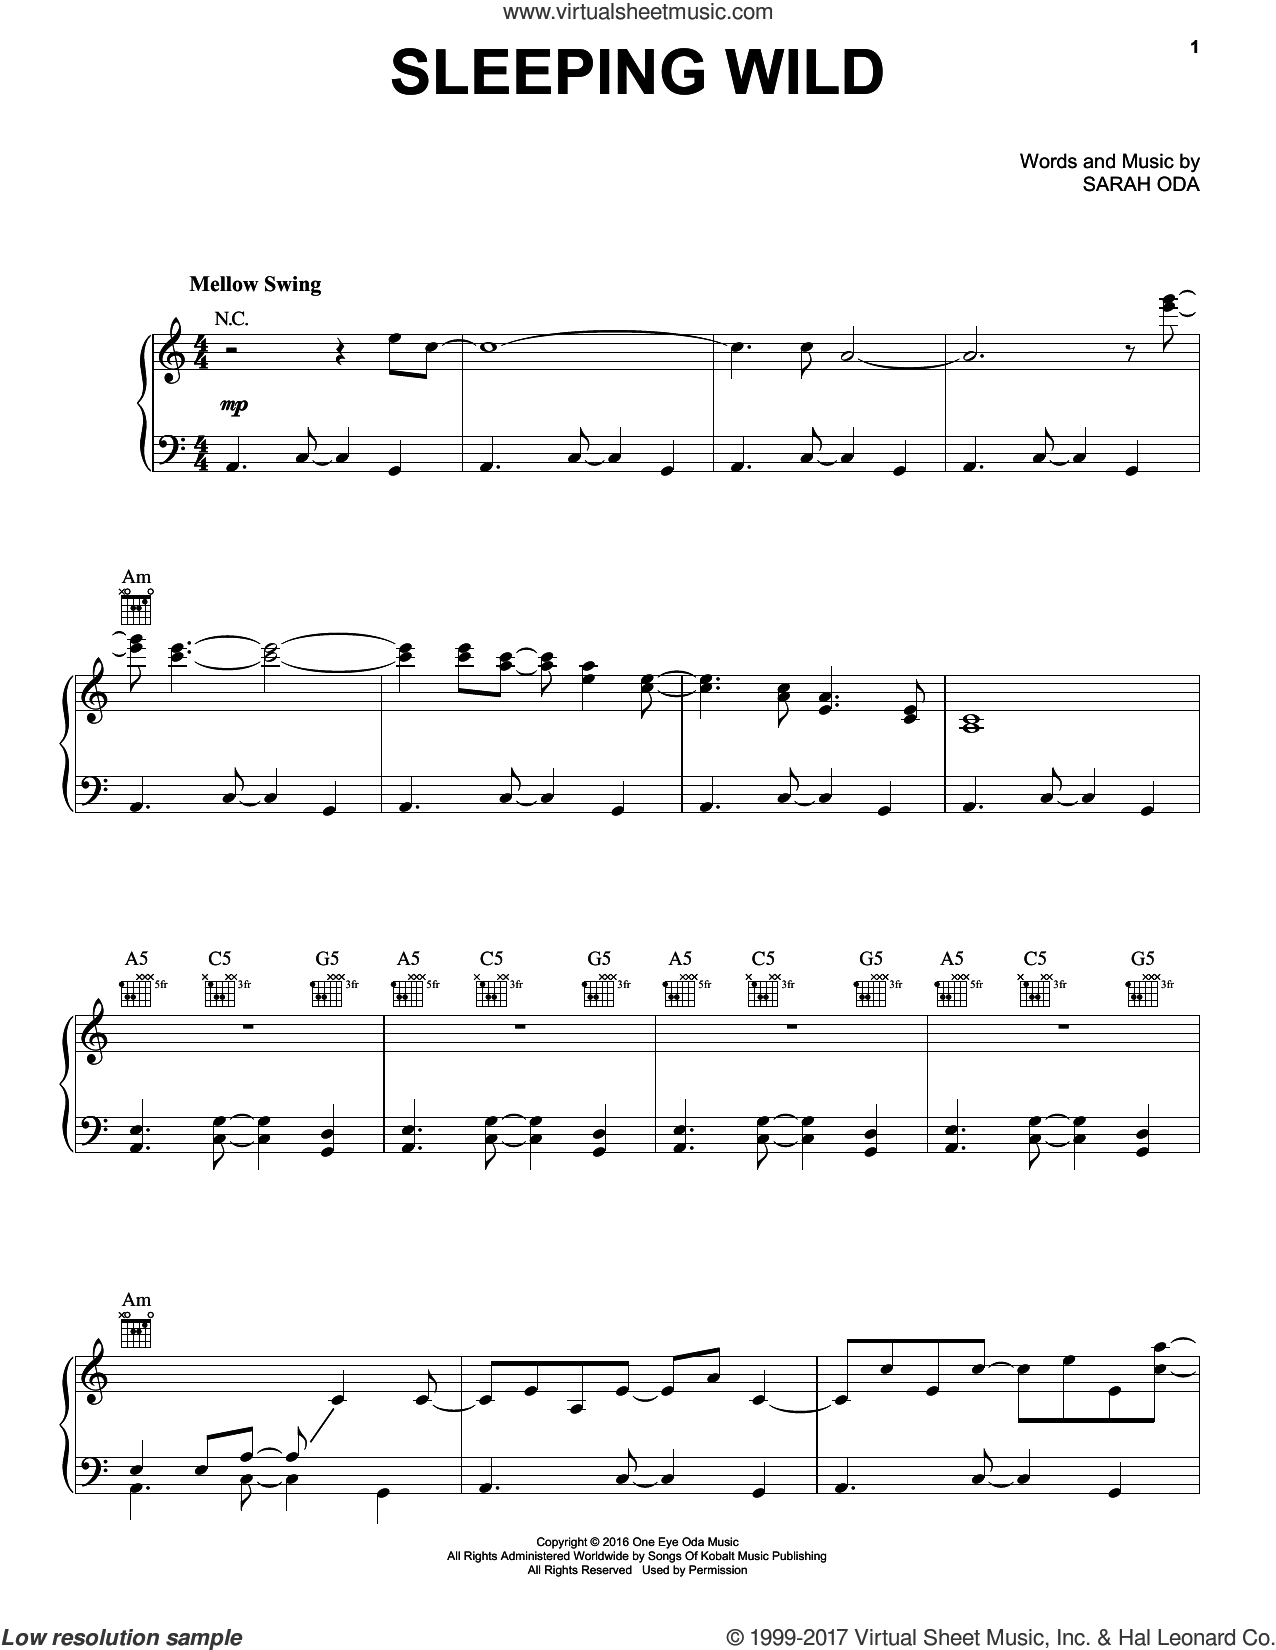 Sleeping Wild sheet music for voice, piano or guitar by Norah Jones, intermediate voice, piano or guitar. Score Image Preview.